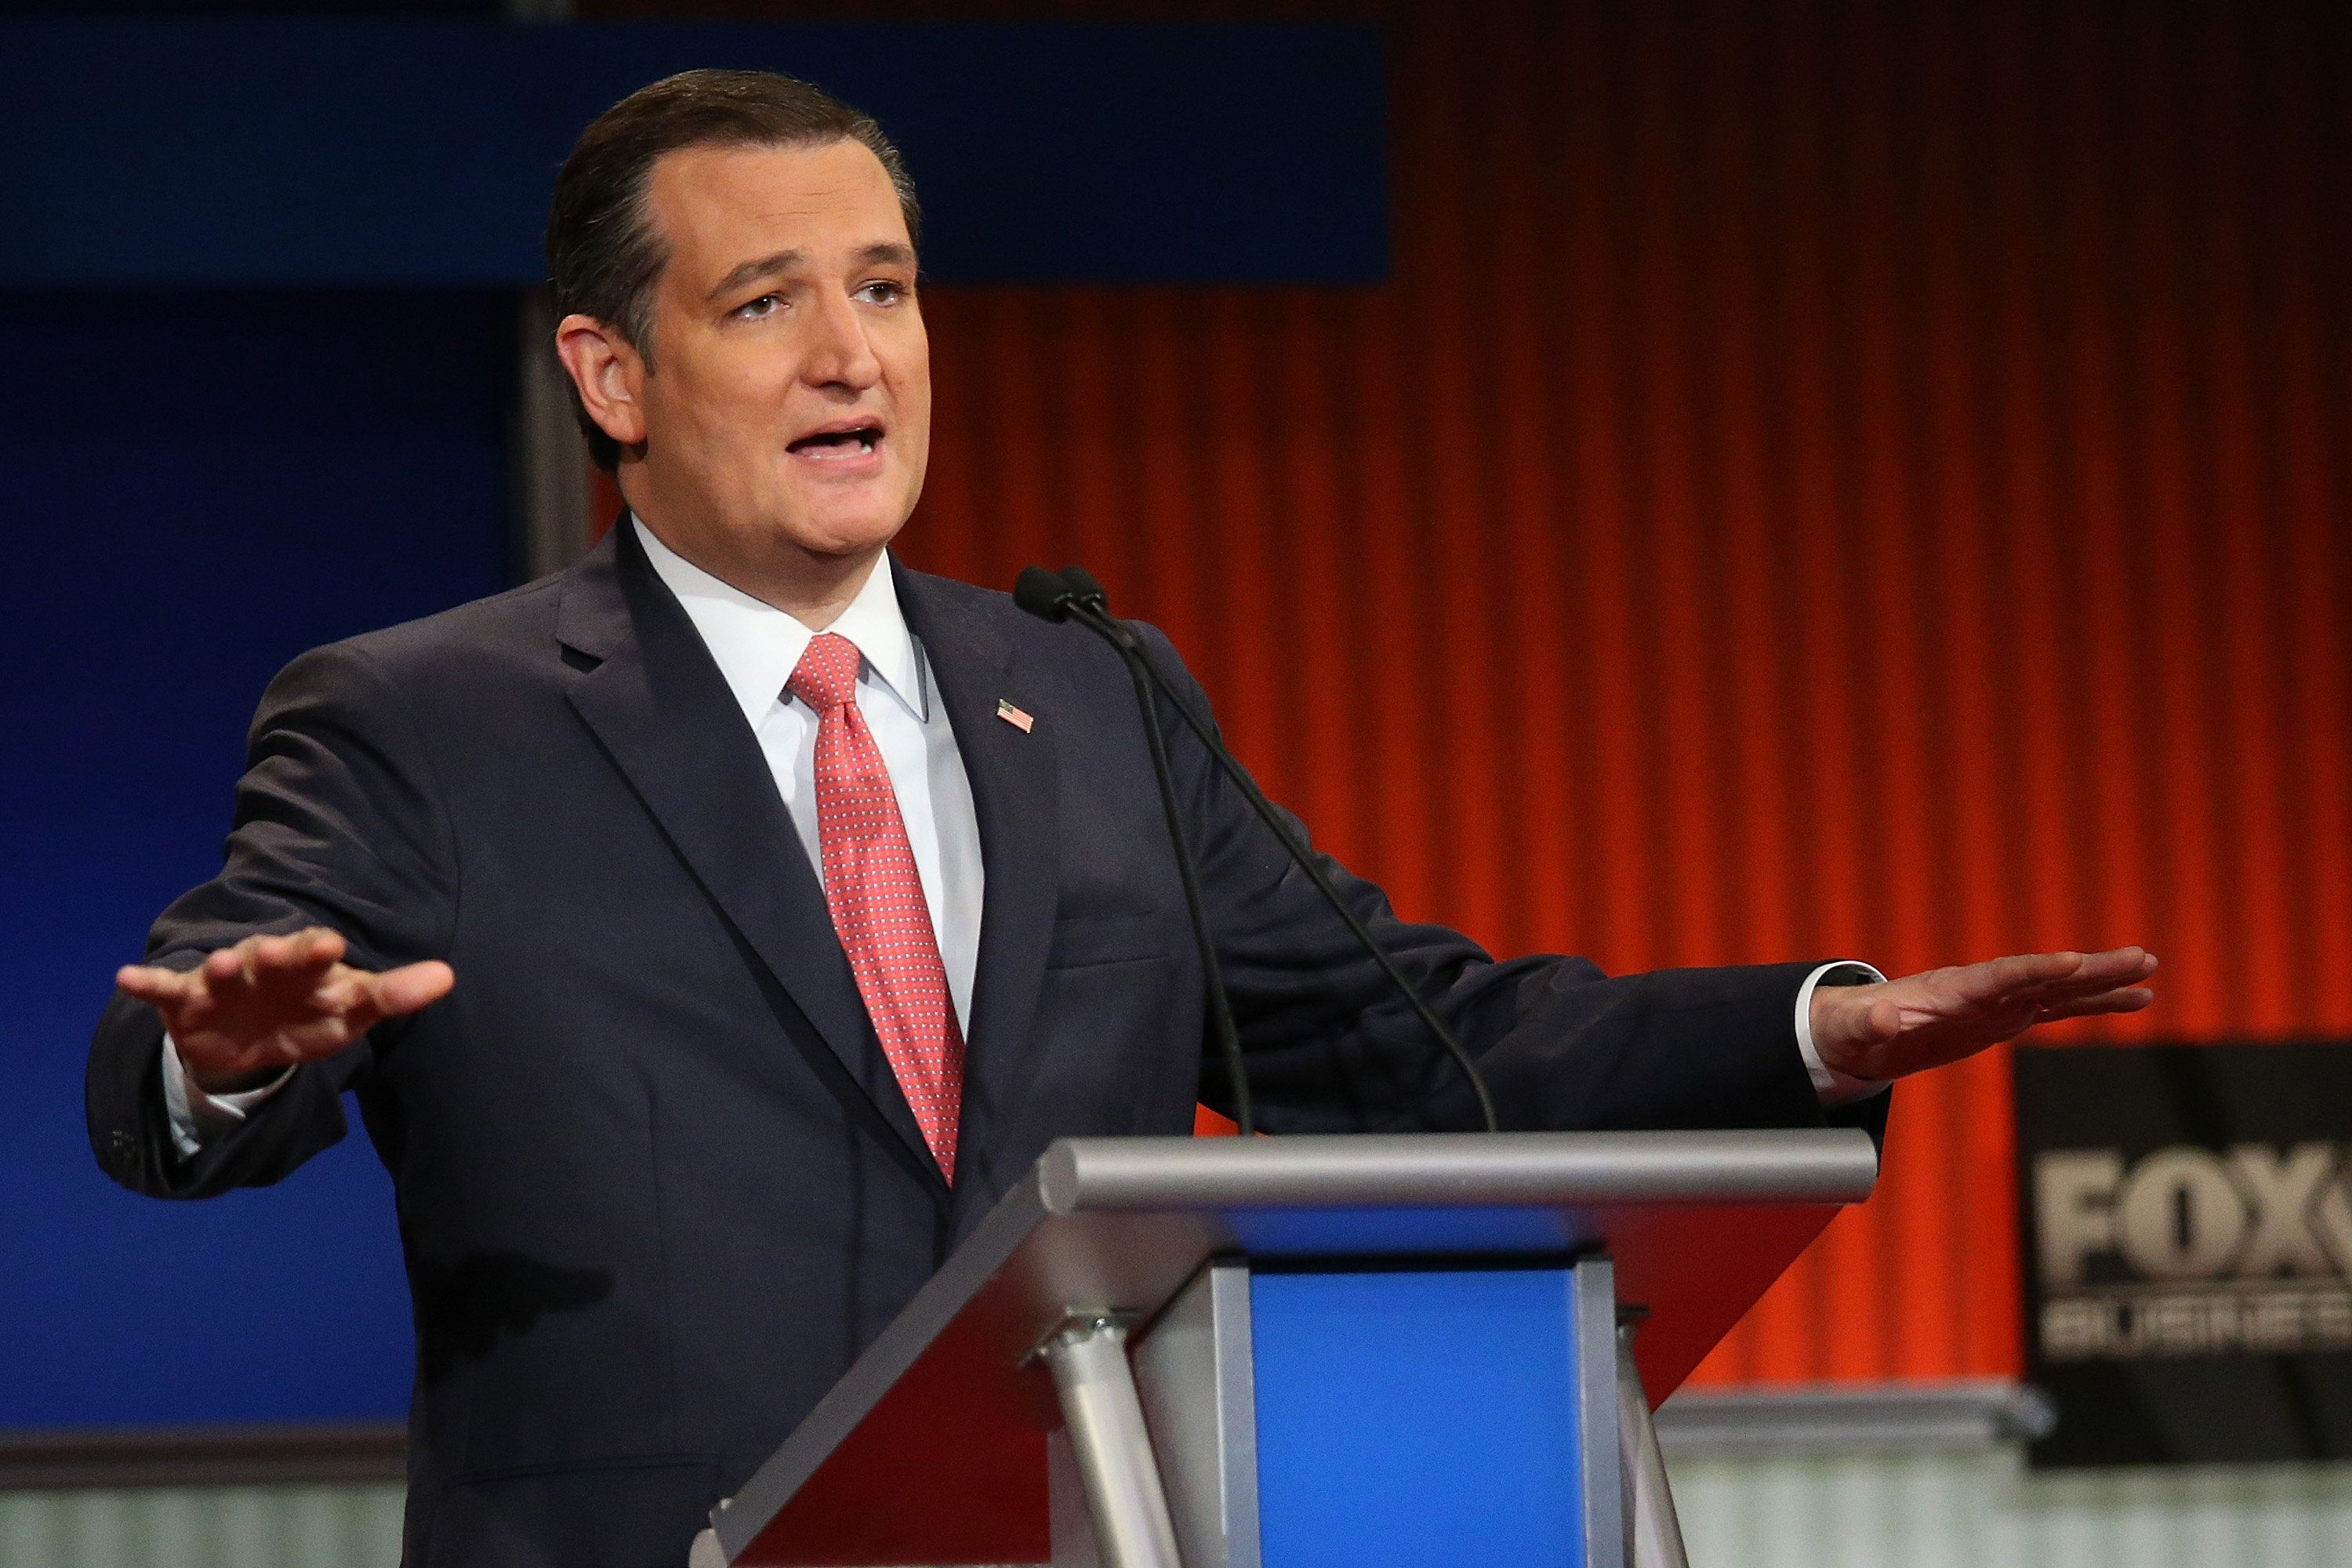 NORTH CHARLESTON, SC - JANUARY 14:  Republican presidential candidate Sen. Ted Cruz (R-TX) participates in the Fox Business Network Republican presidential debate at the North Charleston Coliseum and Performing Arts Center on January 14, 2016 in North Charleston, South Carolina. The sixth Republican debate is held in two parts, one main debate for the top seven candidates, and another for three other candidates lower in the current polls.  (Photo by Scott Olson/Getty Images)